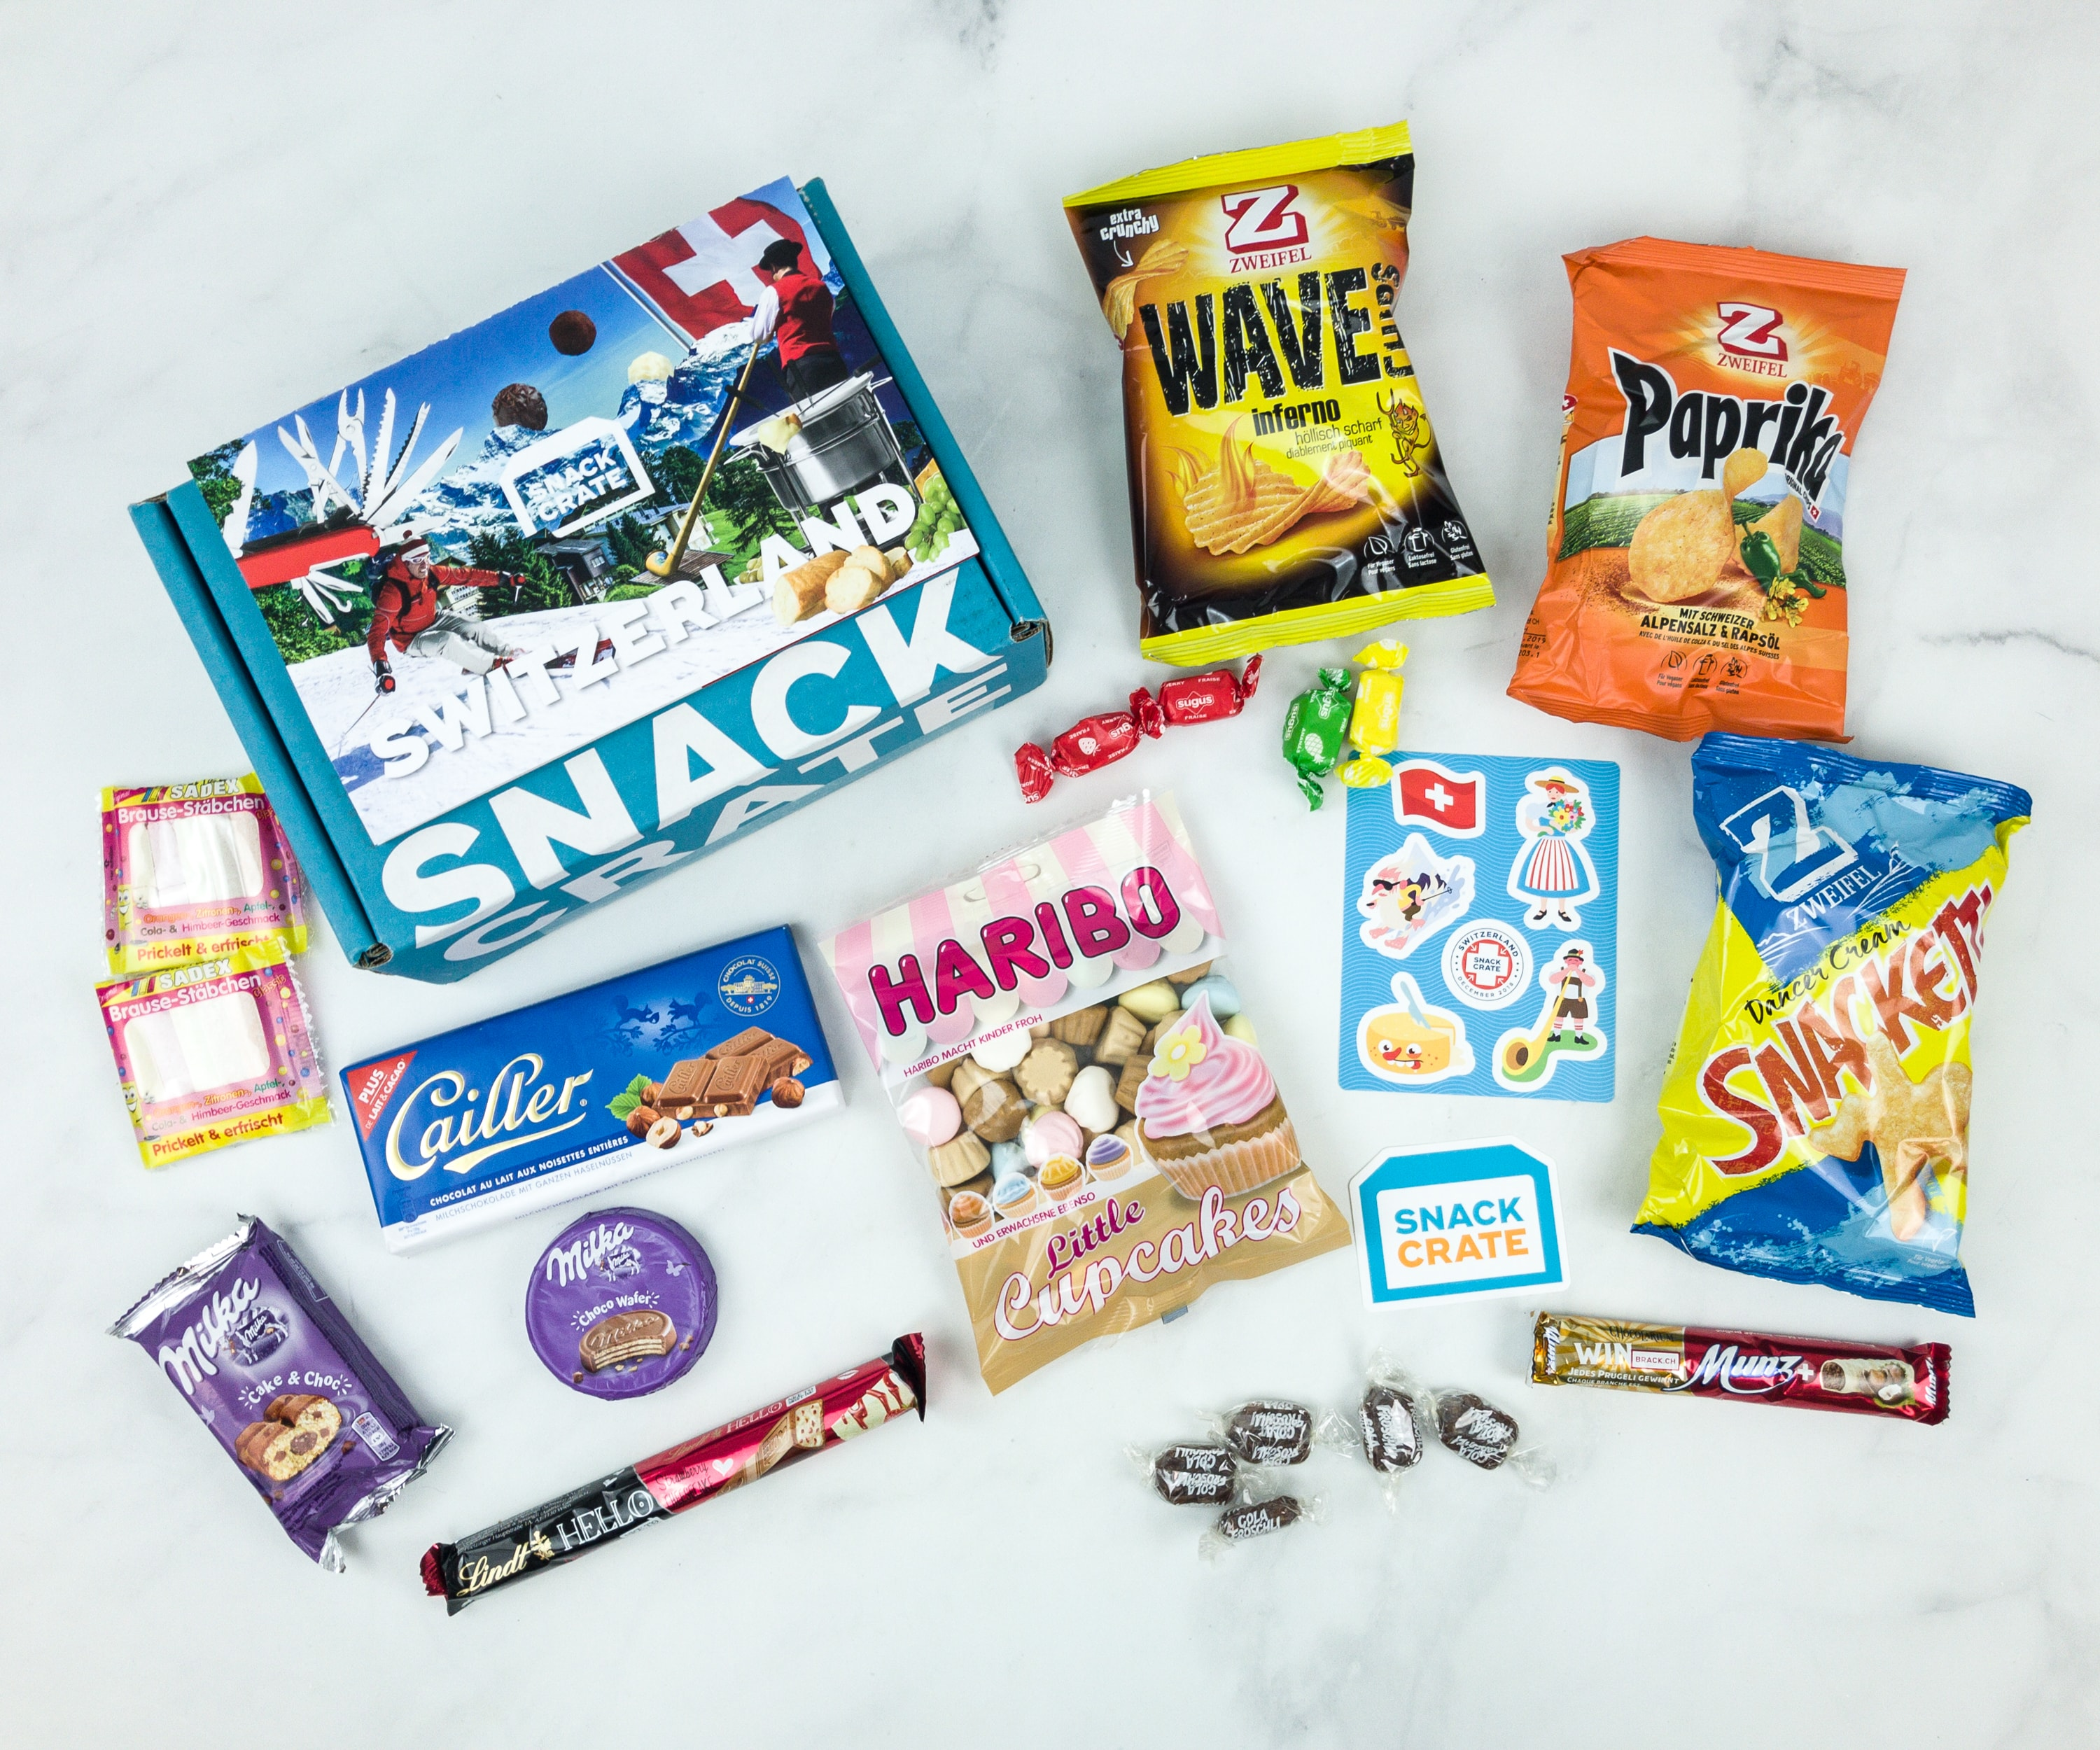 Snack Crate December 2018 Subscription Box Review & $10 Coupon